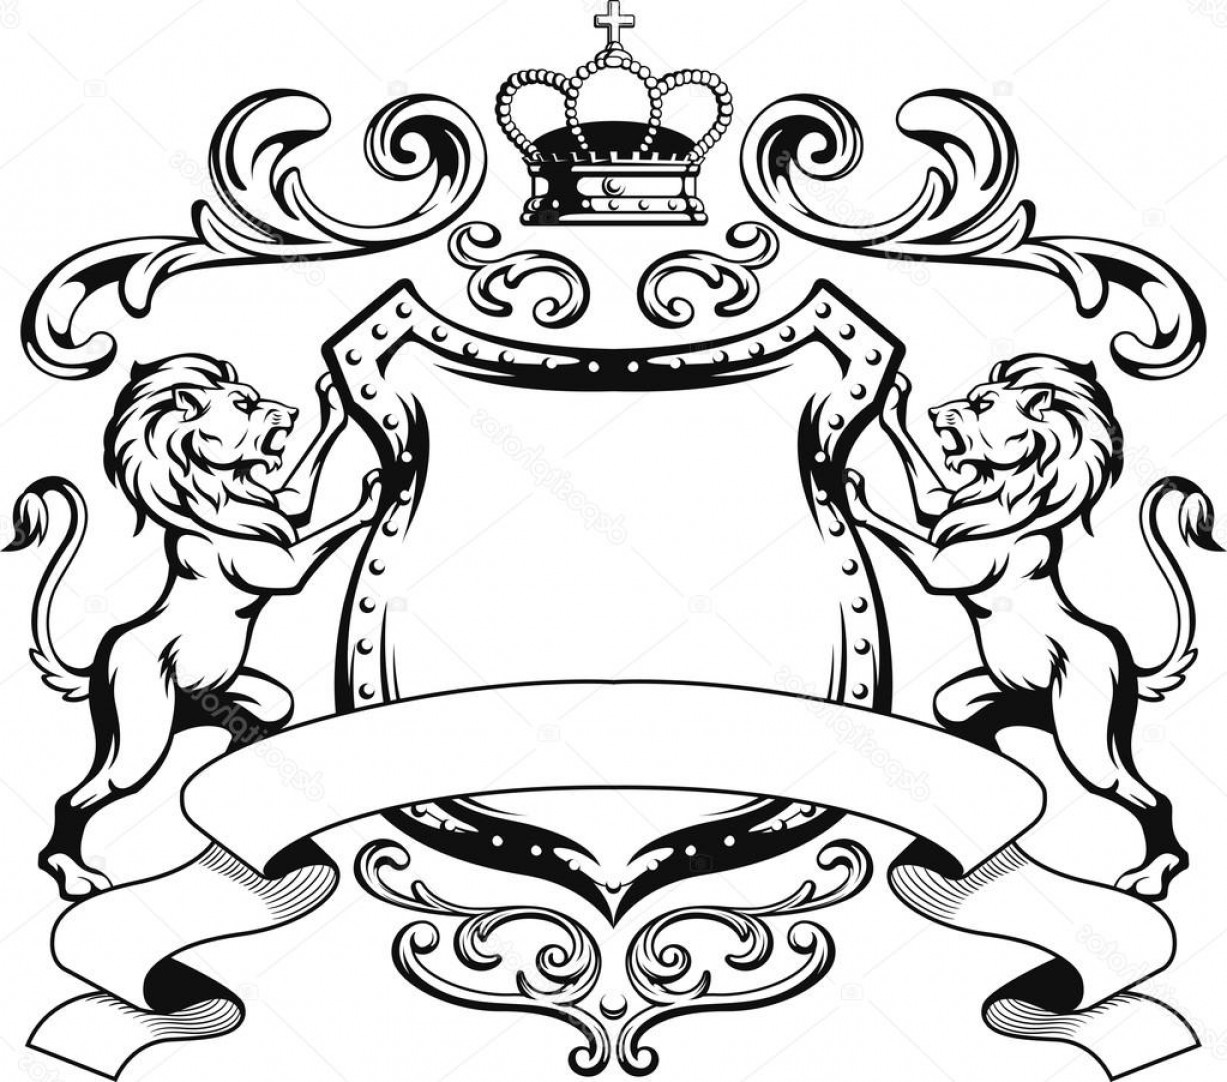 Crest And Coat Of Arms Vector Silhouette: Stock Illustration Heraldic Lion Shield Crest Silhouette